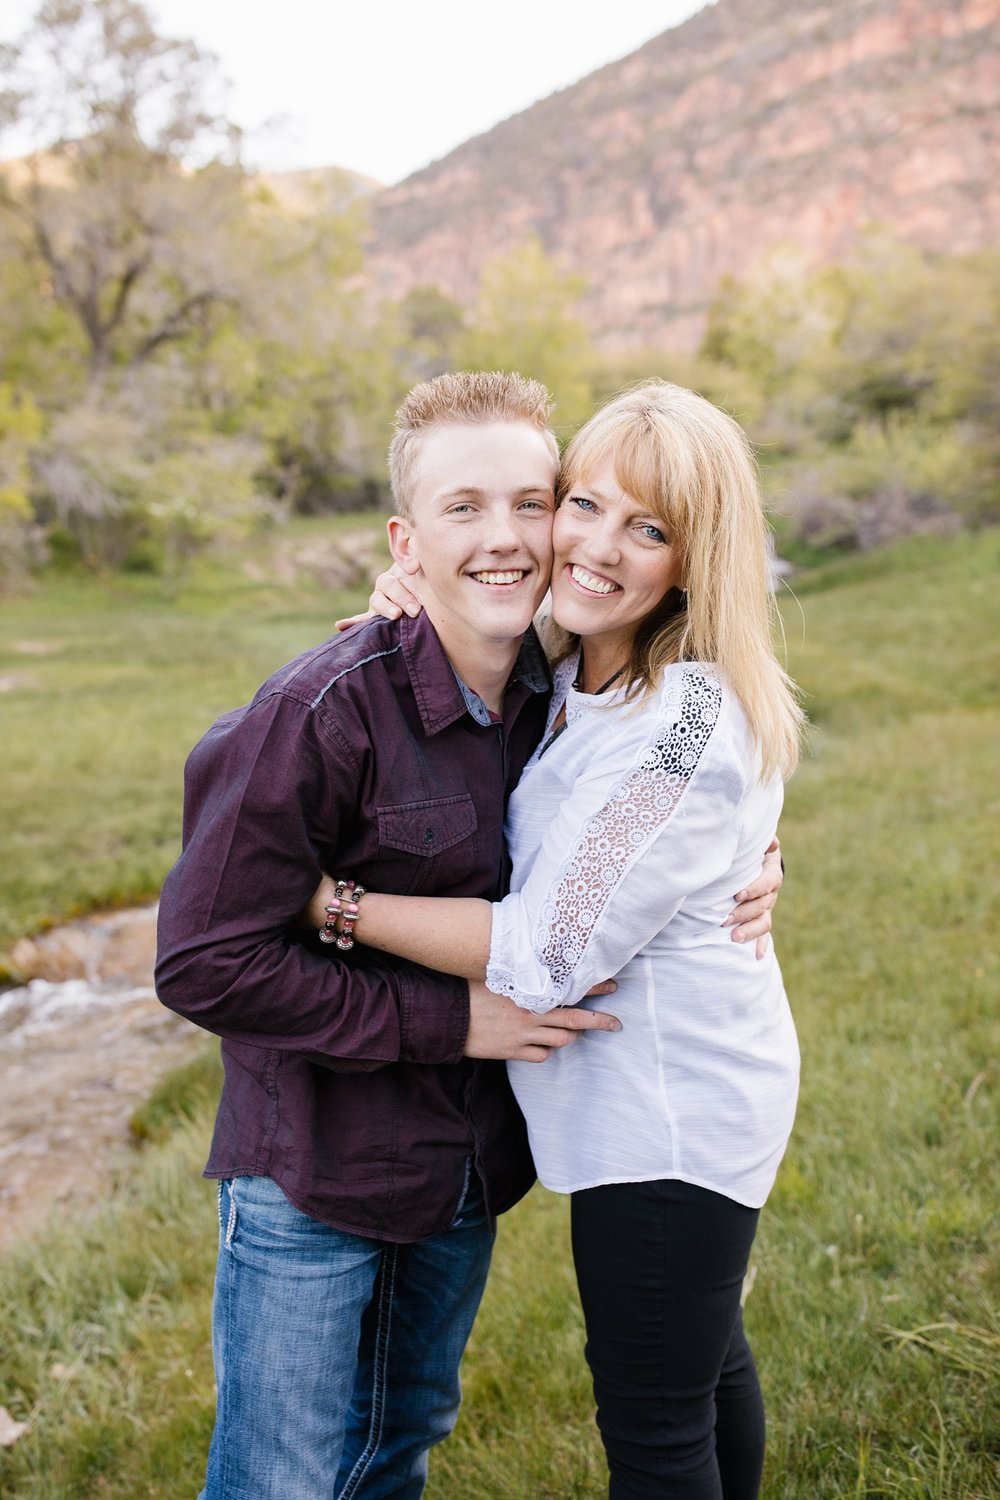 Bagley-107_Lizzie-B-Imagery-Utah-Family-Photographer-Central-Utah-Extended-Family-Session.jpg